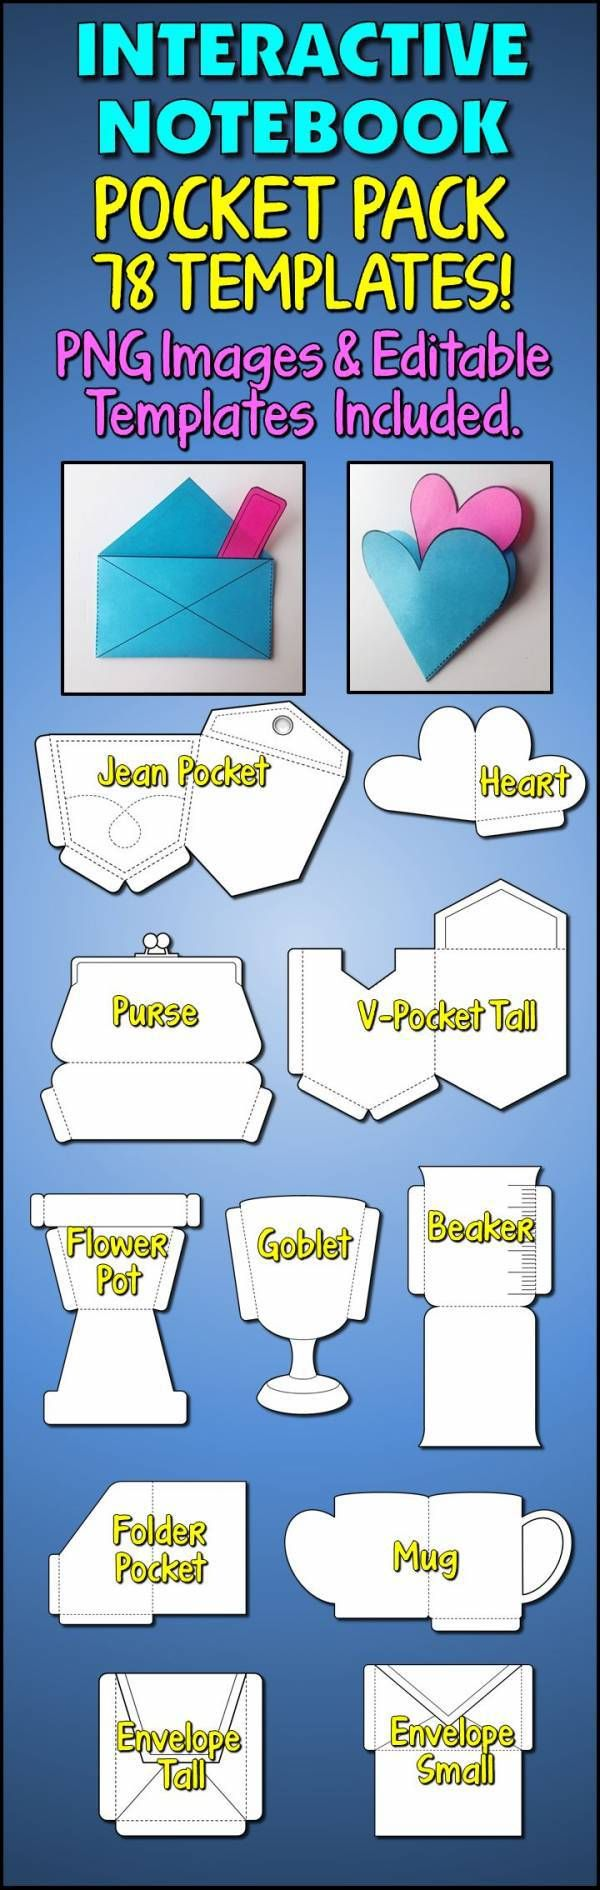 Paper pockets are very useful embellishments for scrapbookerss, card makers and other paper crafters. We can use them for holding…